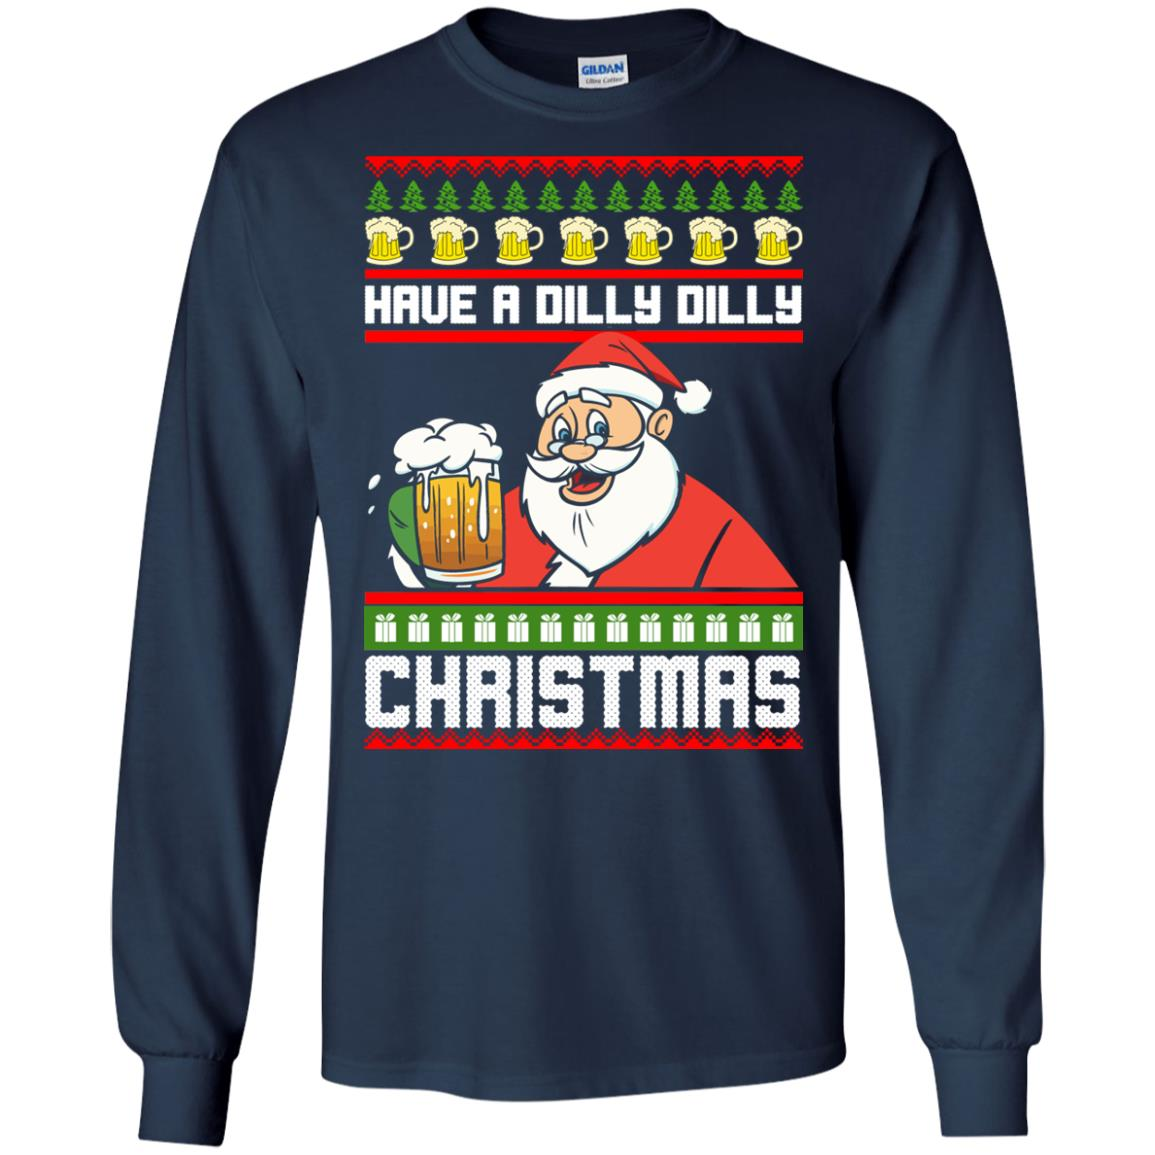 image 6129 - Have a Dilly Dilly Christmas Ugly Sweatshirt, Long Sleeve